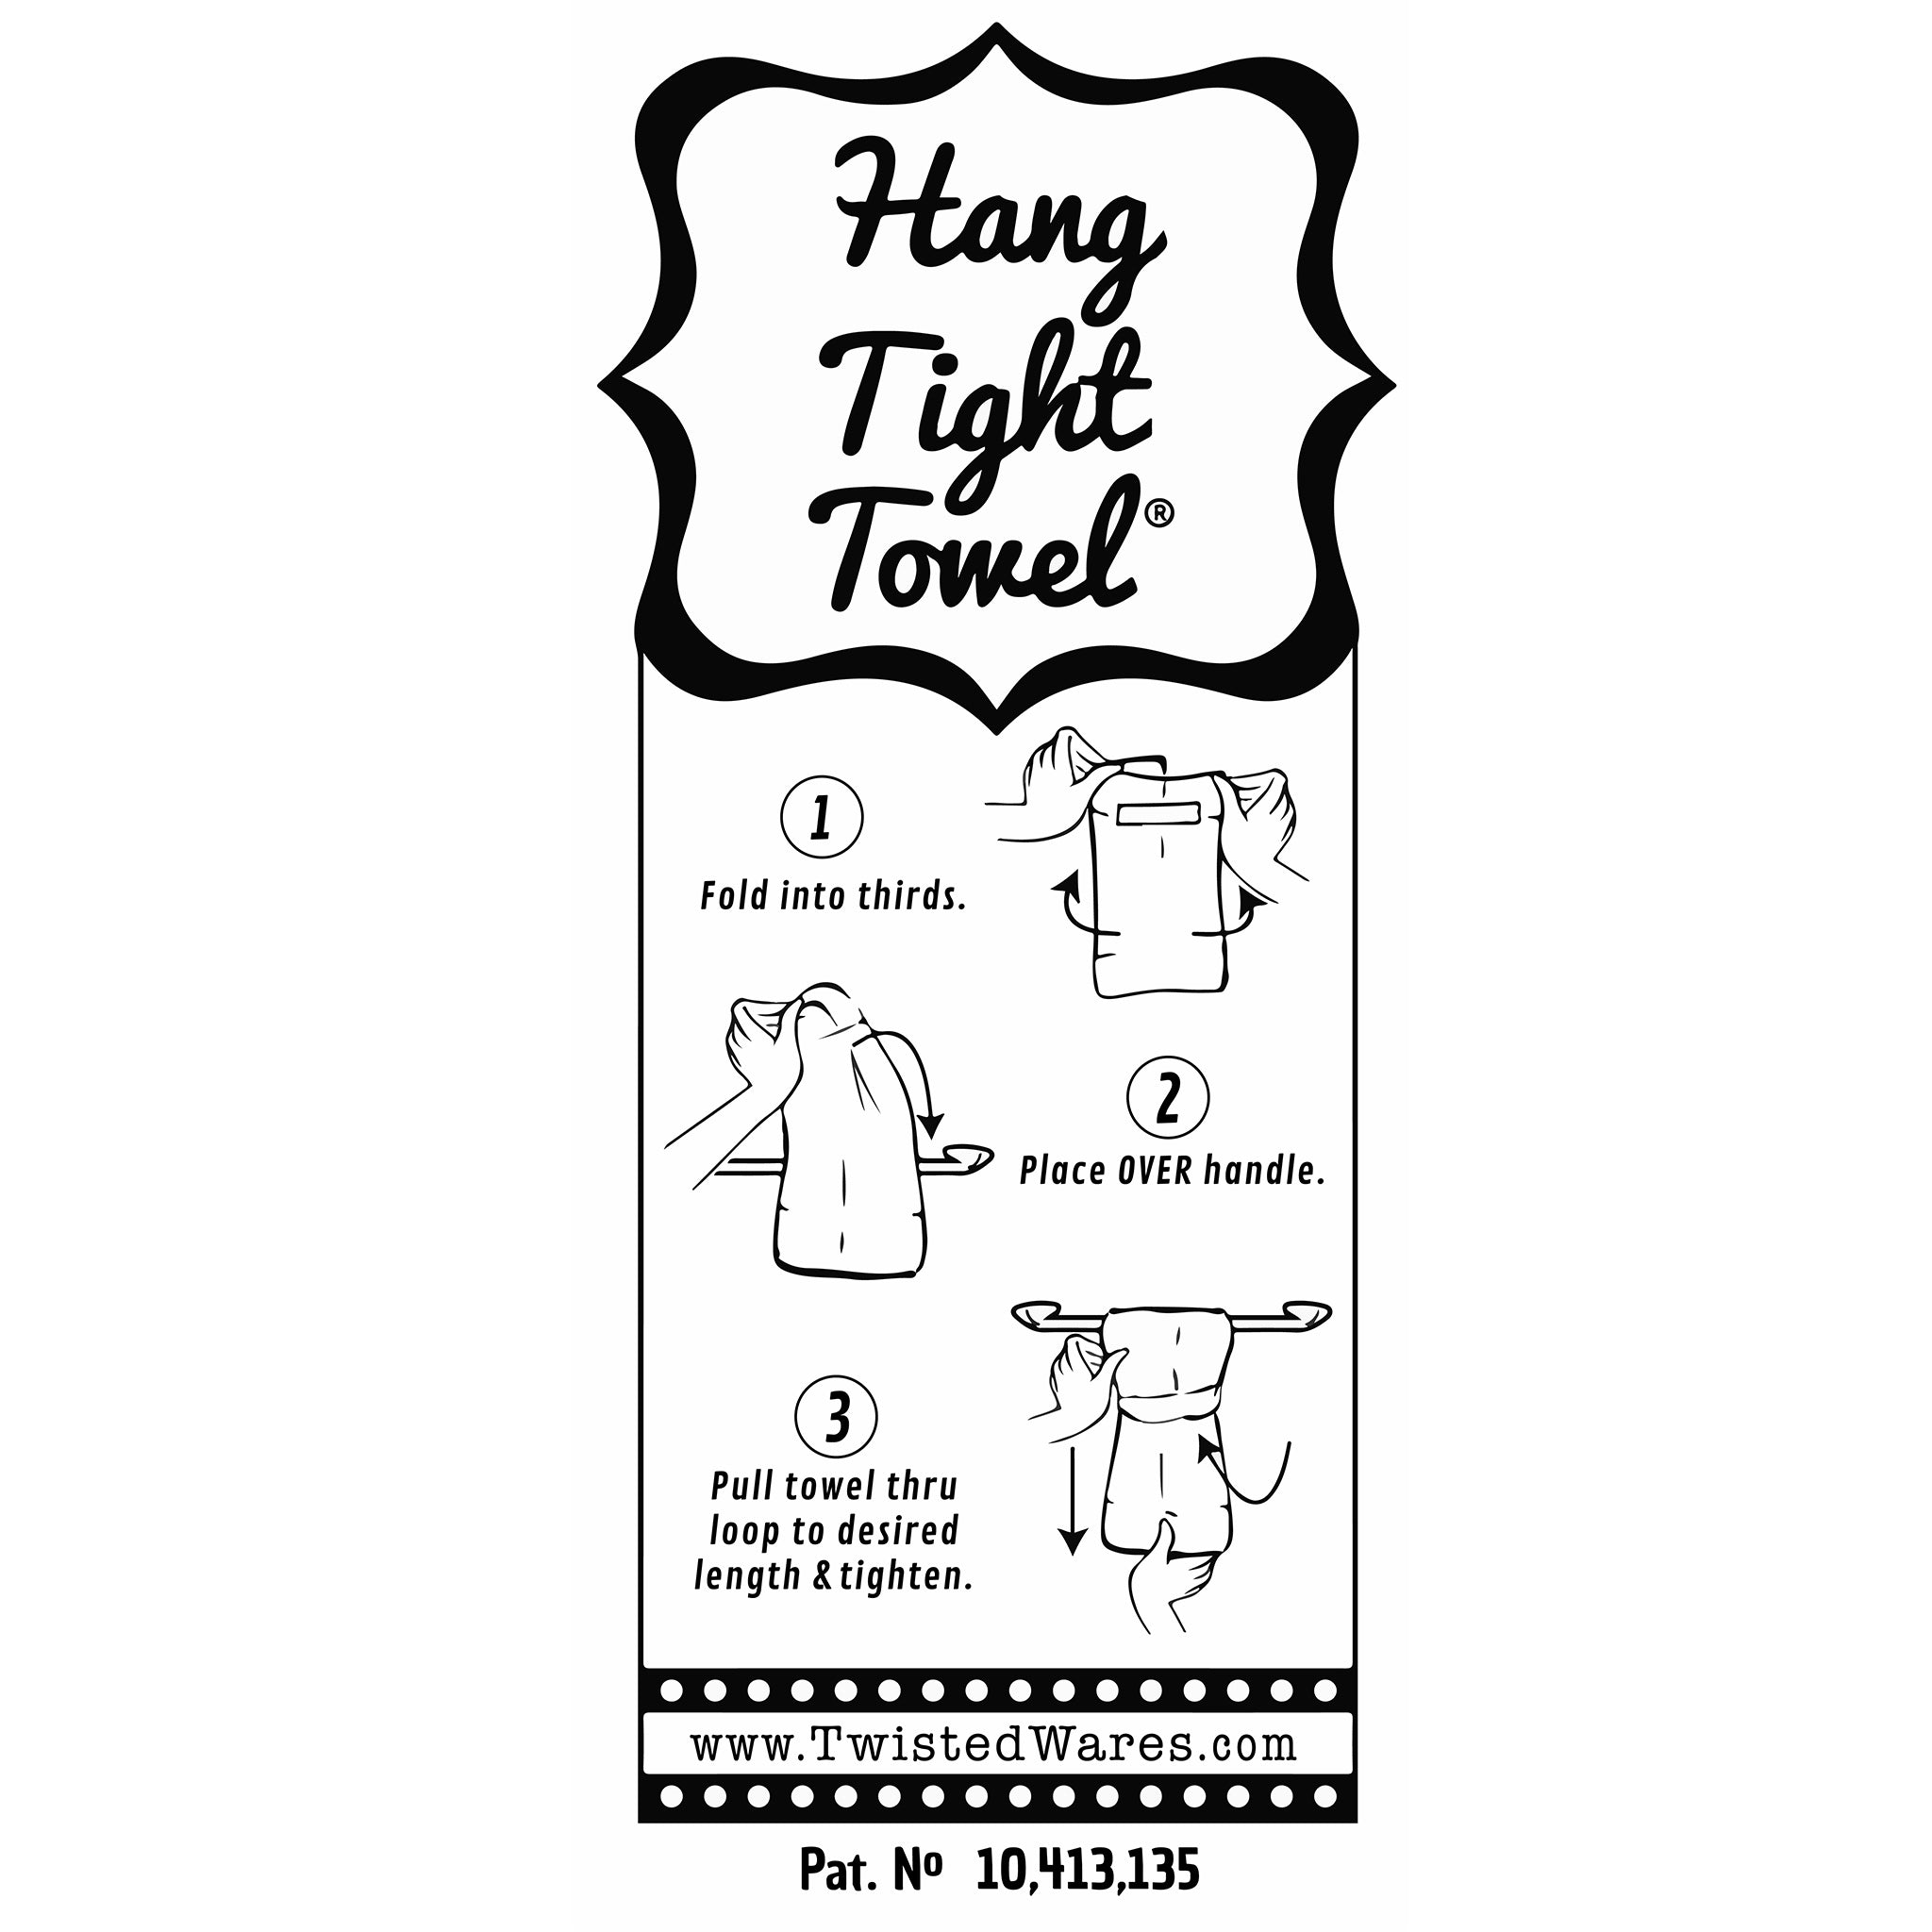 There It Goes, My Last Fuck Flour Sack Hang Tight Towel®